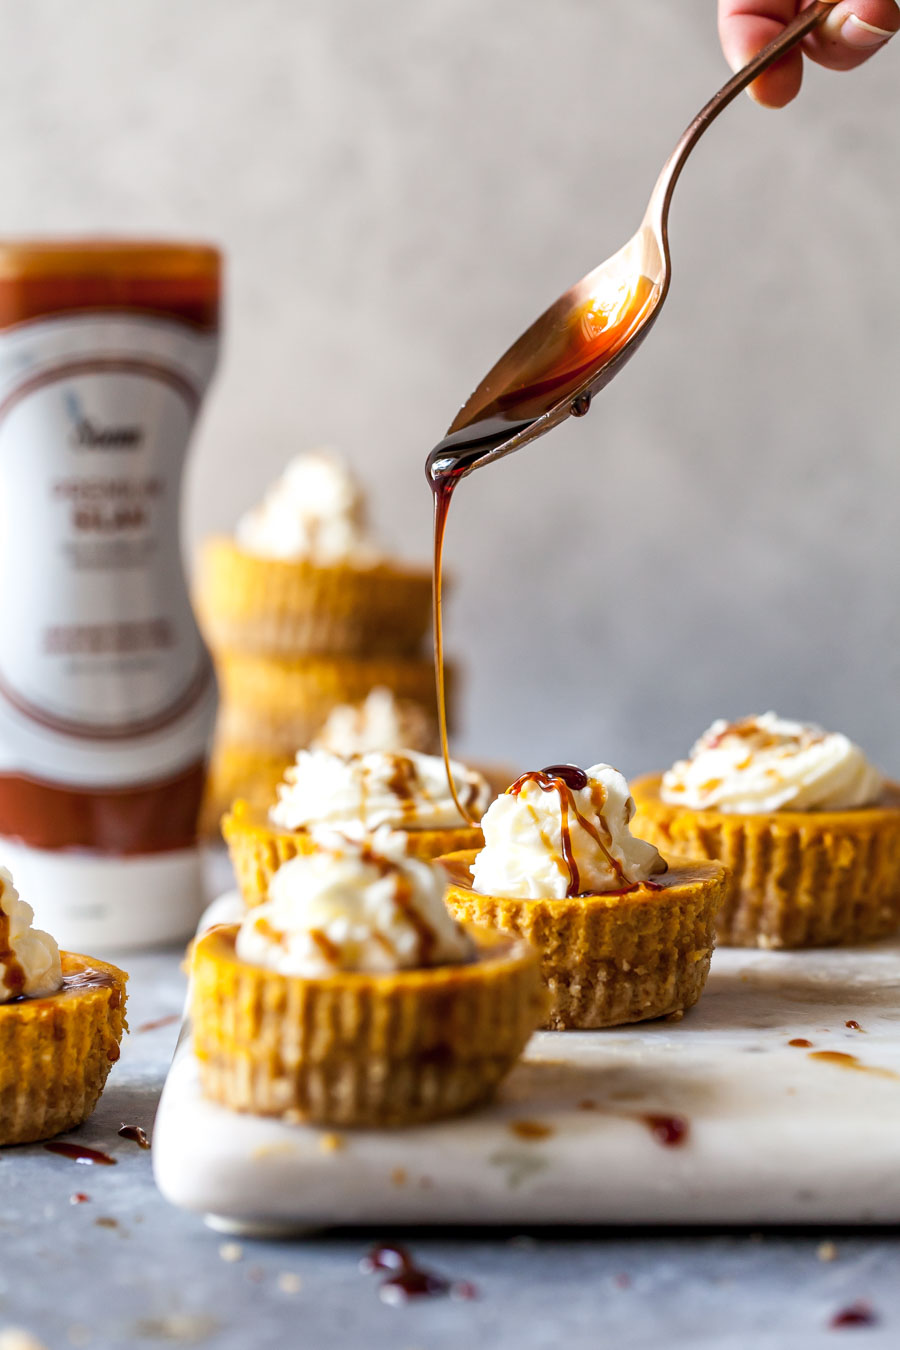 Soom Silan Date Syrup Drizzled over Pumpkin Cheesecakes